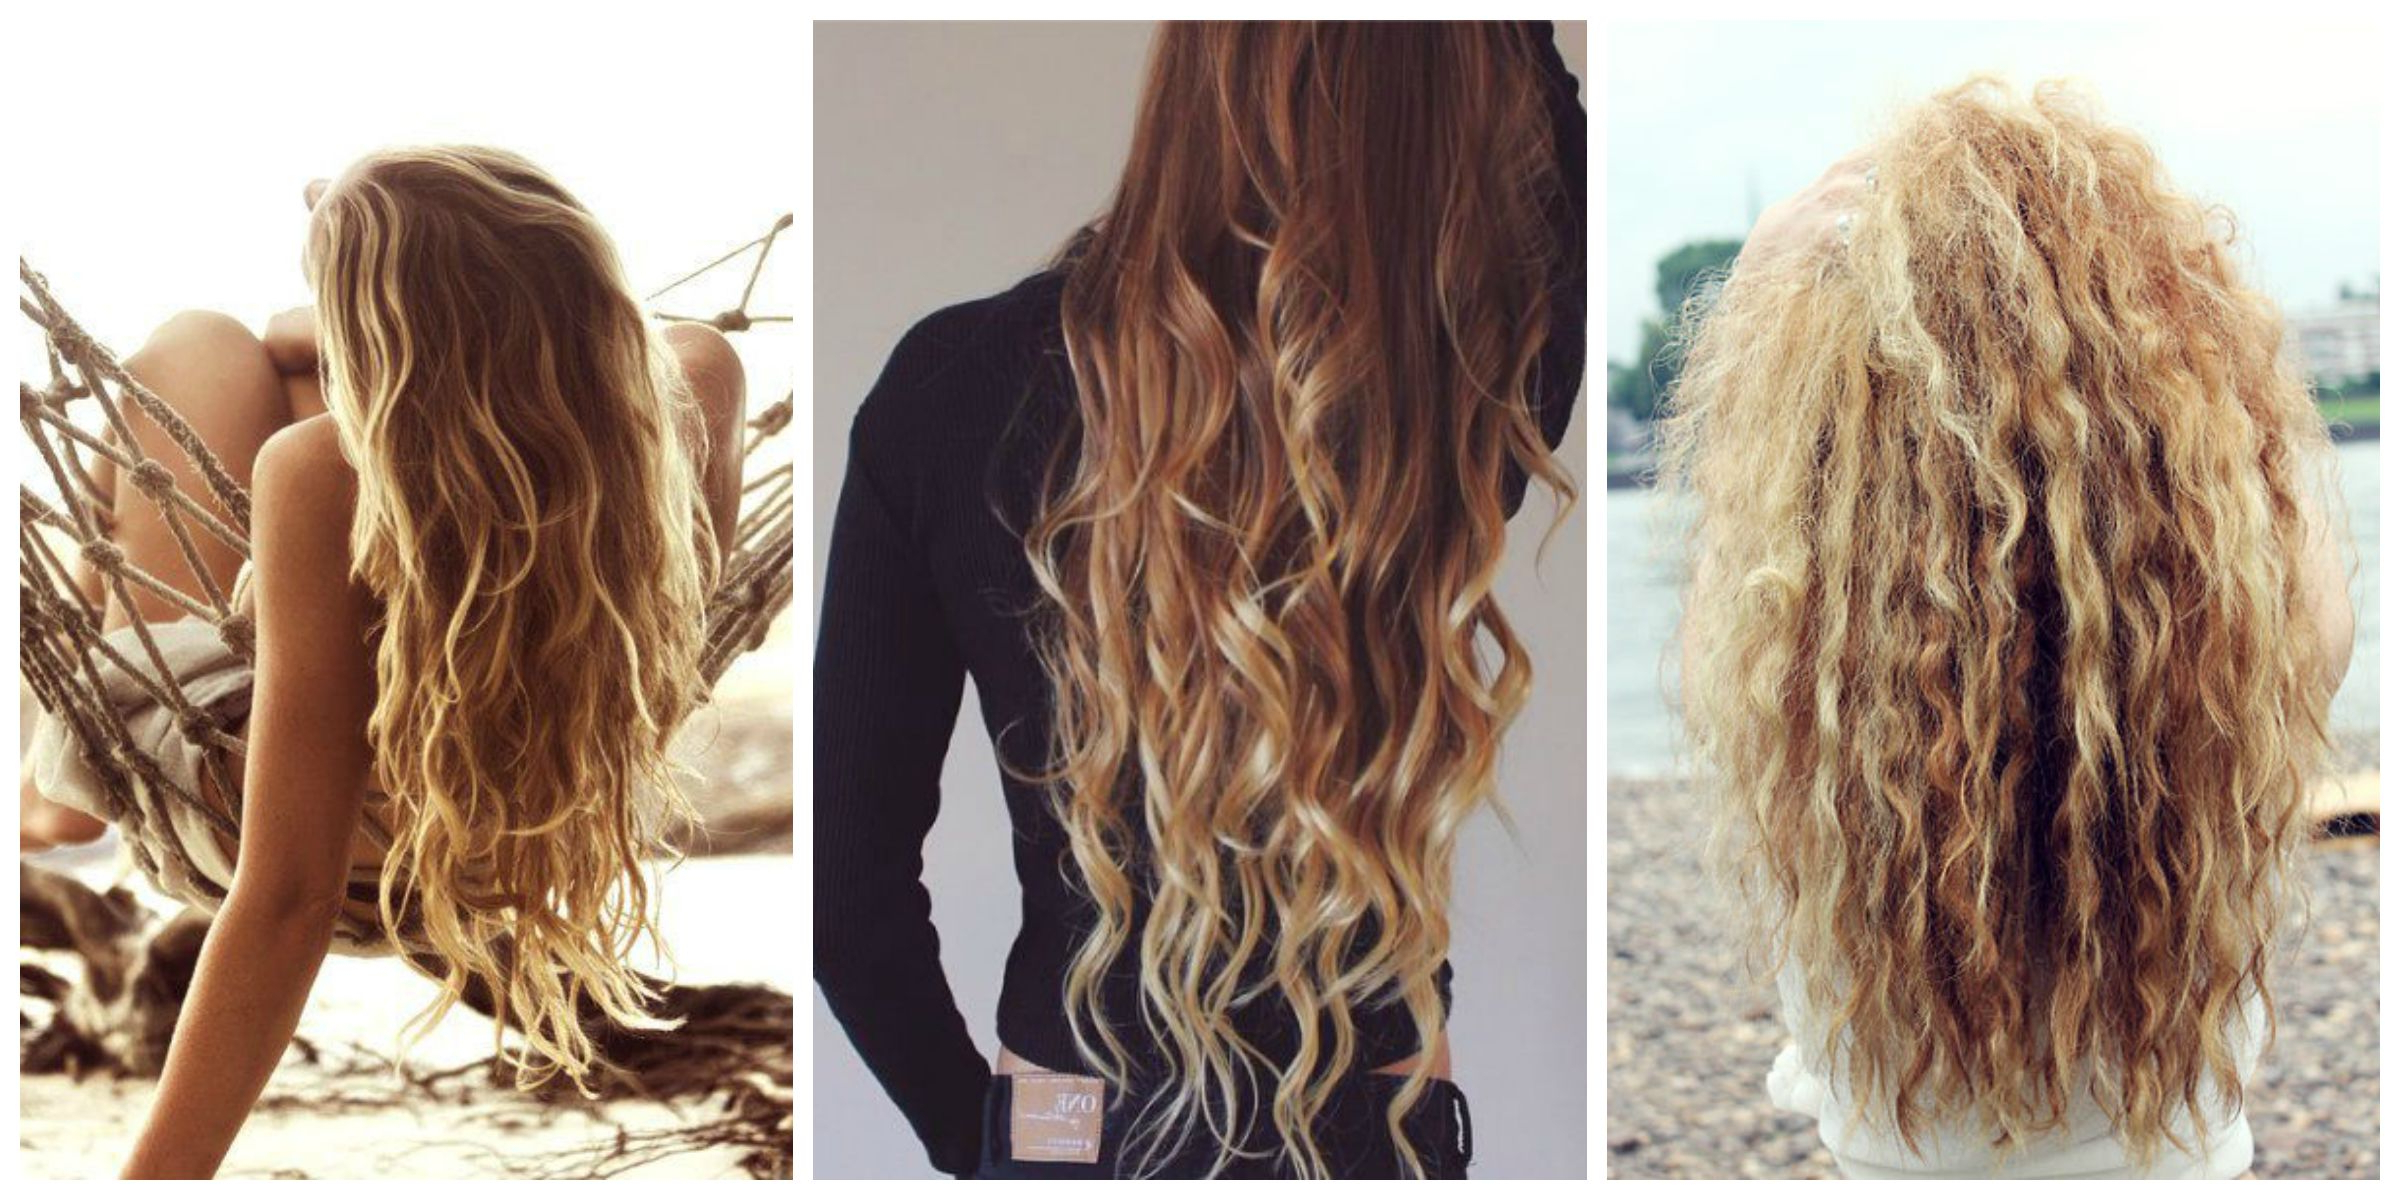 Beach Waves Hair: The #1 Summer Hairstyle Trend Intended For Current Beach Waves Hairstyles (View 9 of 20)